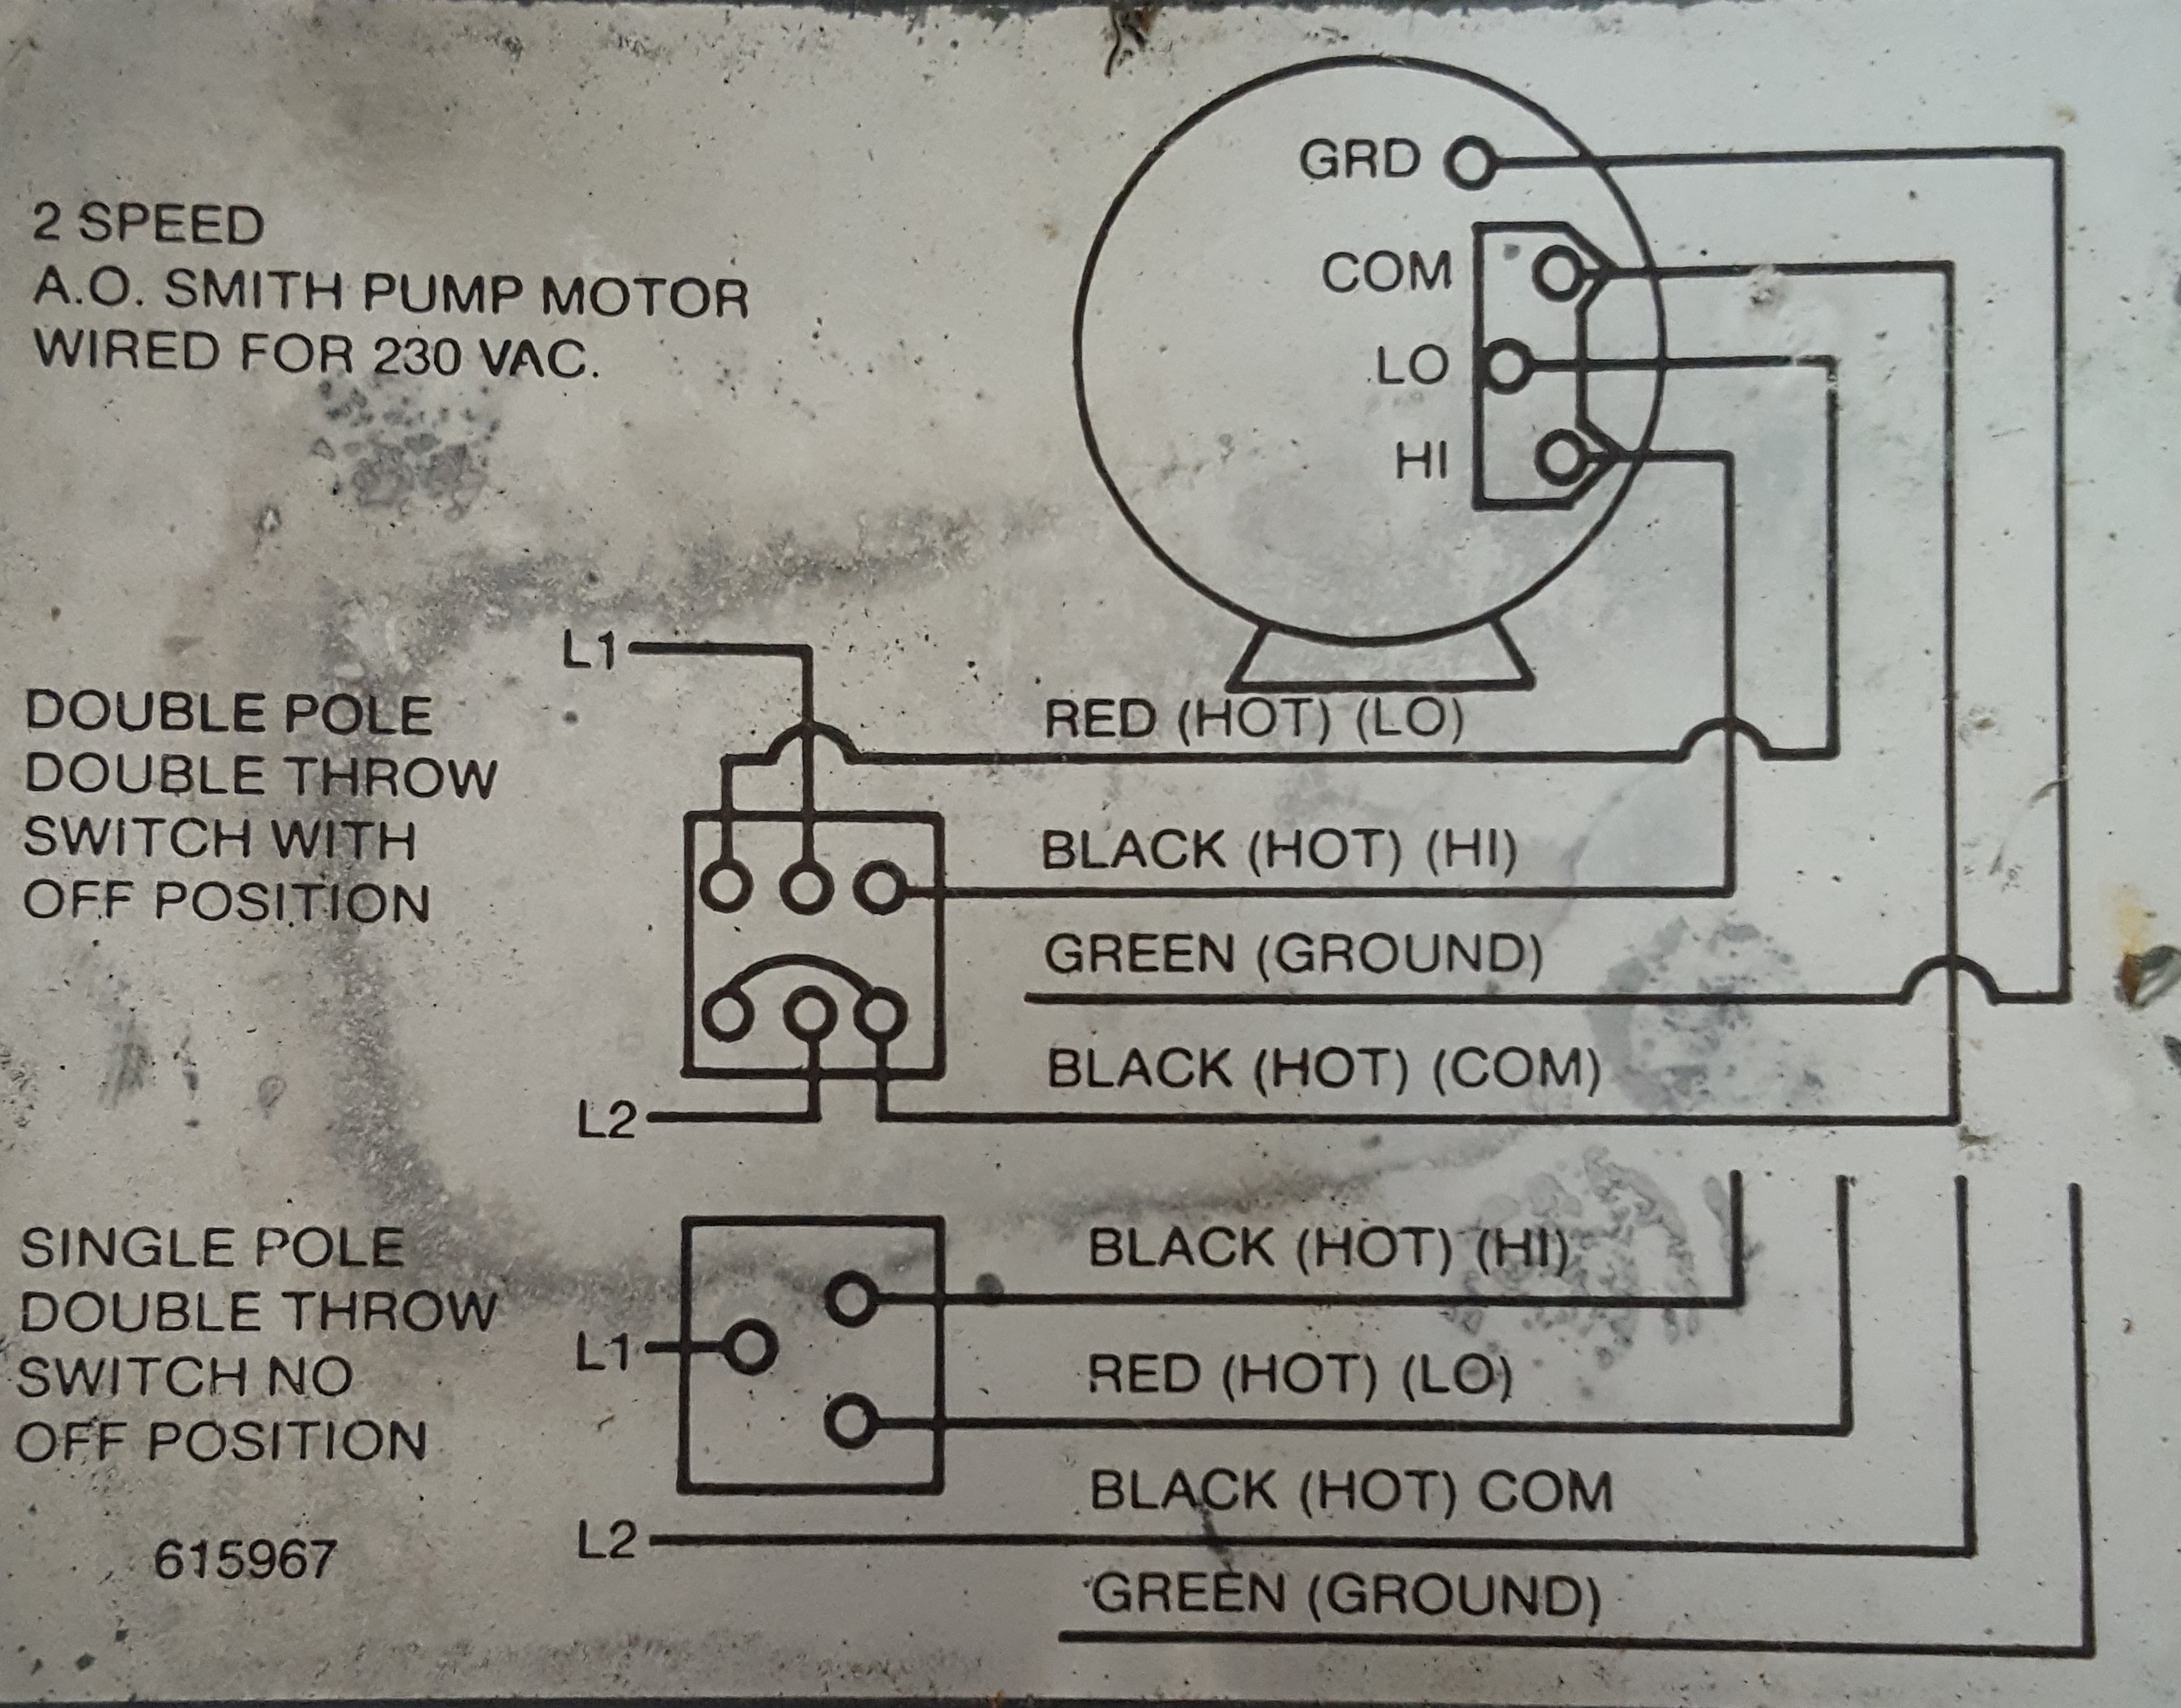 Double Pole Double Throw Switch Wiring Diagram